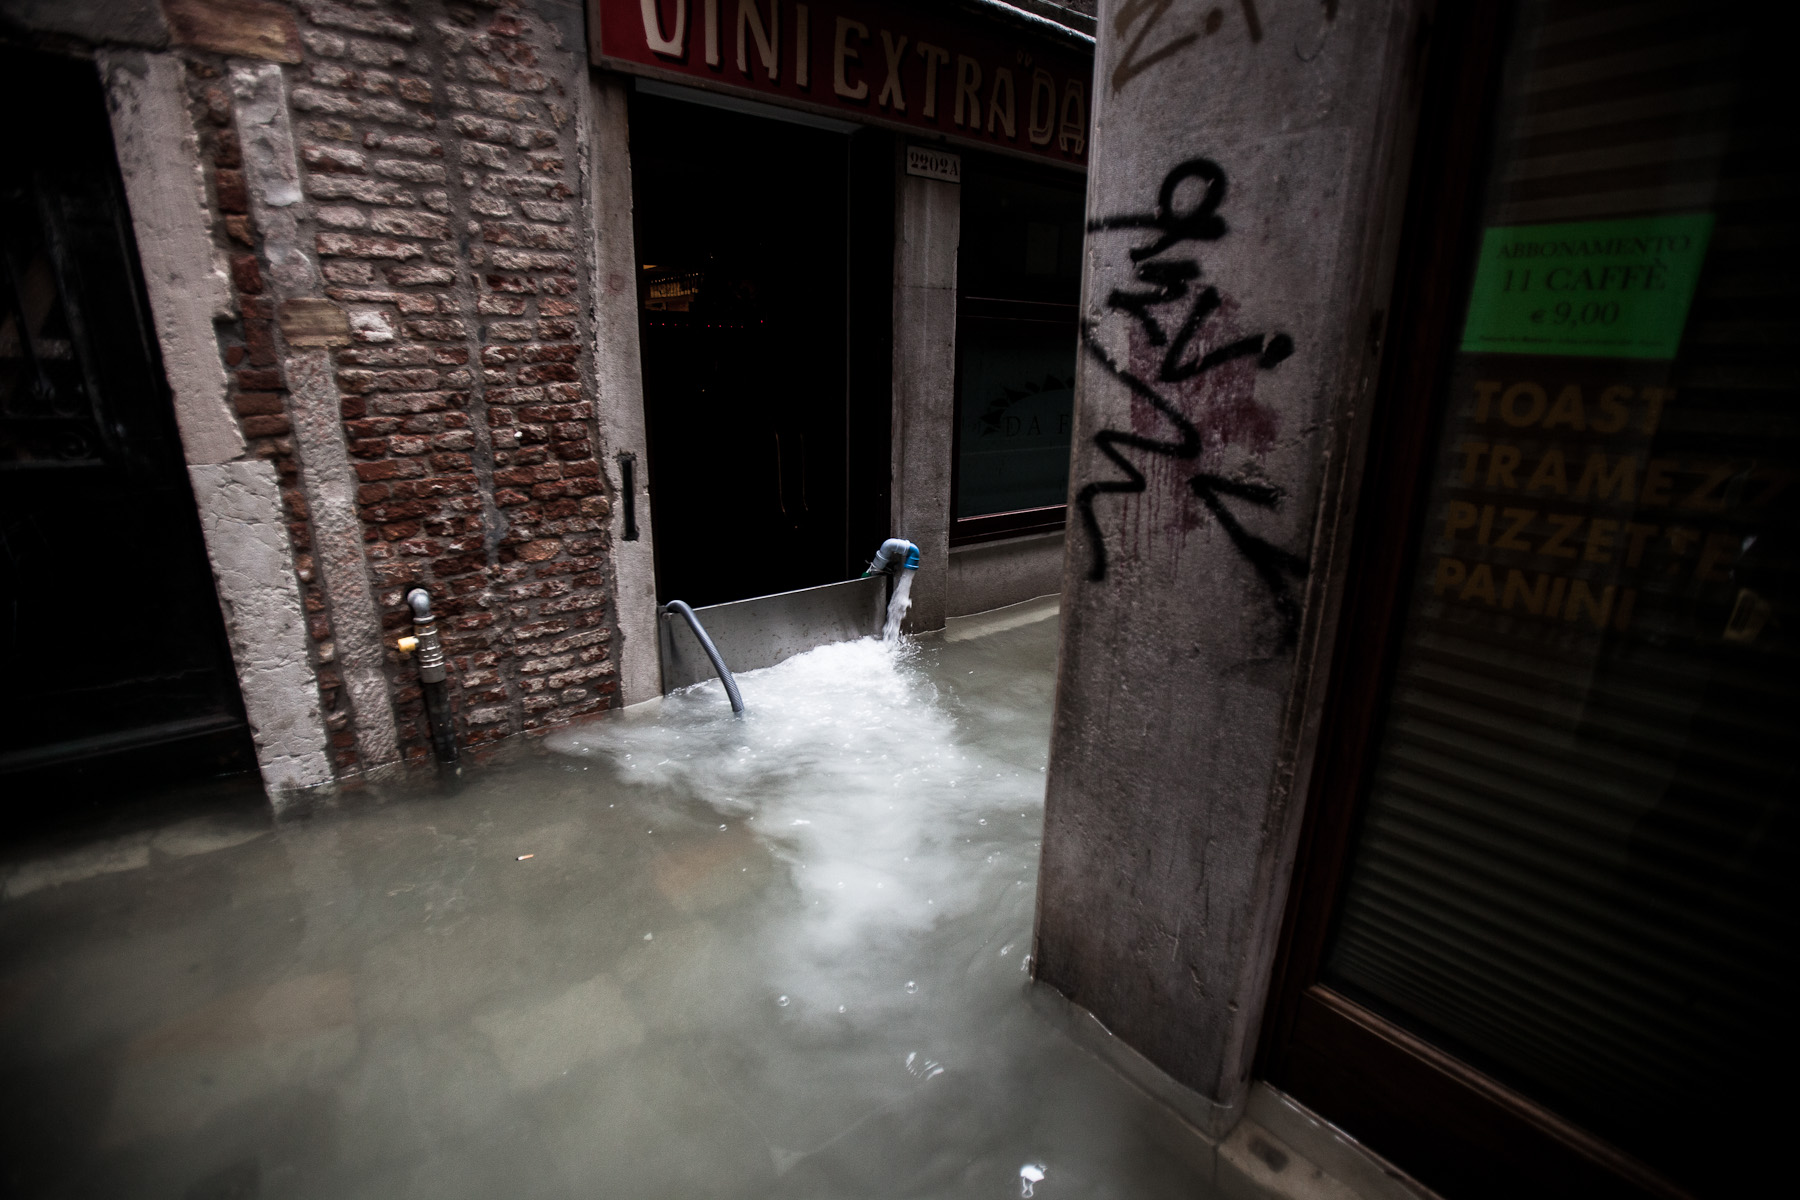 Floodwater is pumped out of a building in Venice during one of the highest floods in recent years on November 1, 2012. The city is sinking one to two milimeters a year, while the north lagoon is subsiding 2 to 3 mm a year and the islands in the south lagoon are sinking at a rate of 3 to 4 mm a year. This subsidence will have to be accounted for by the scientists trying to protect the lagoon.